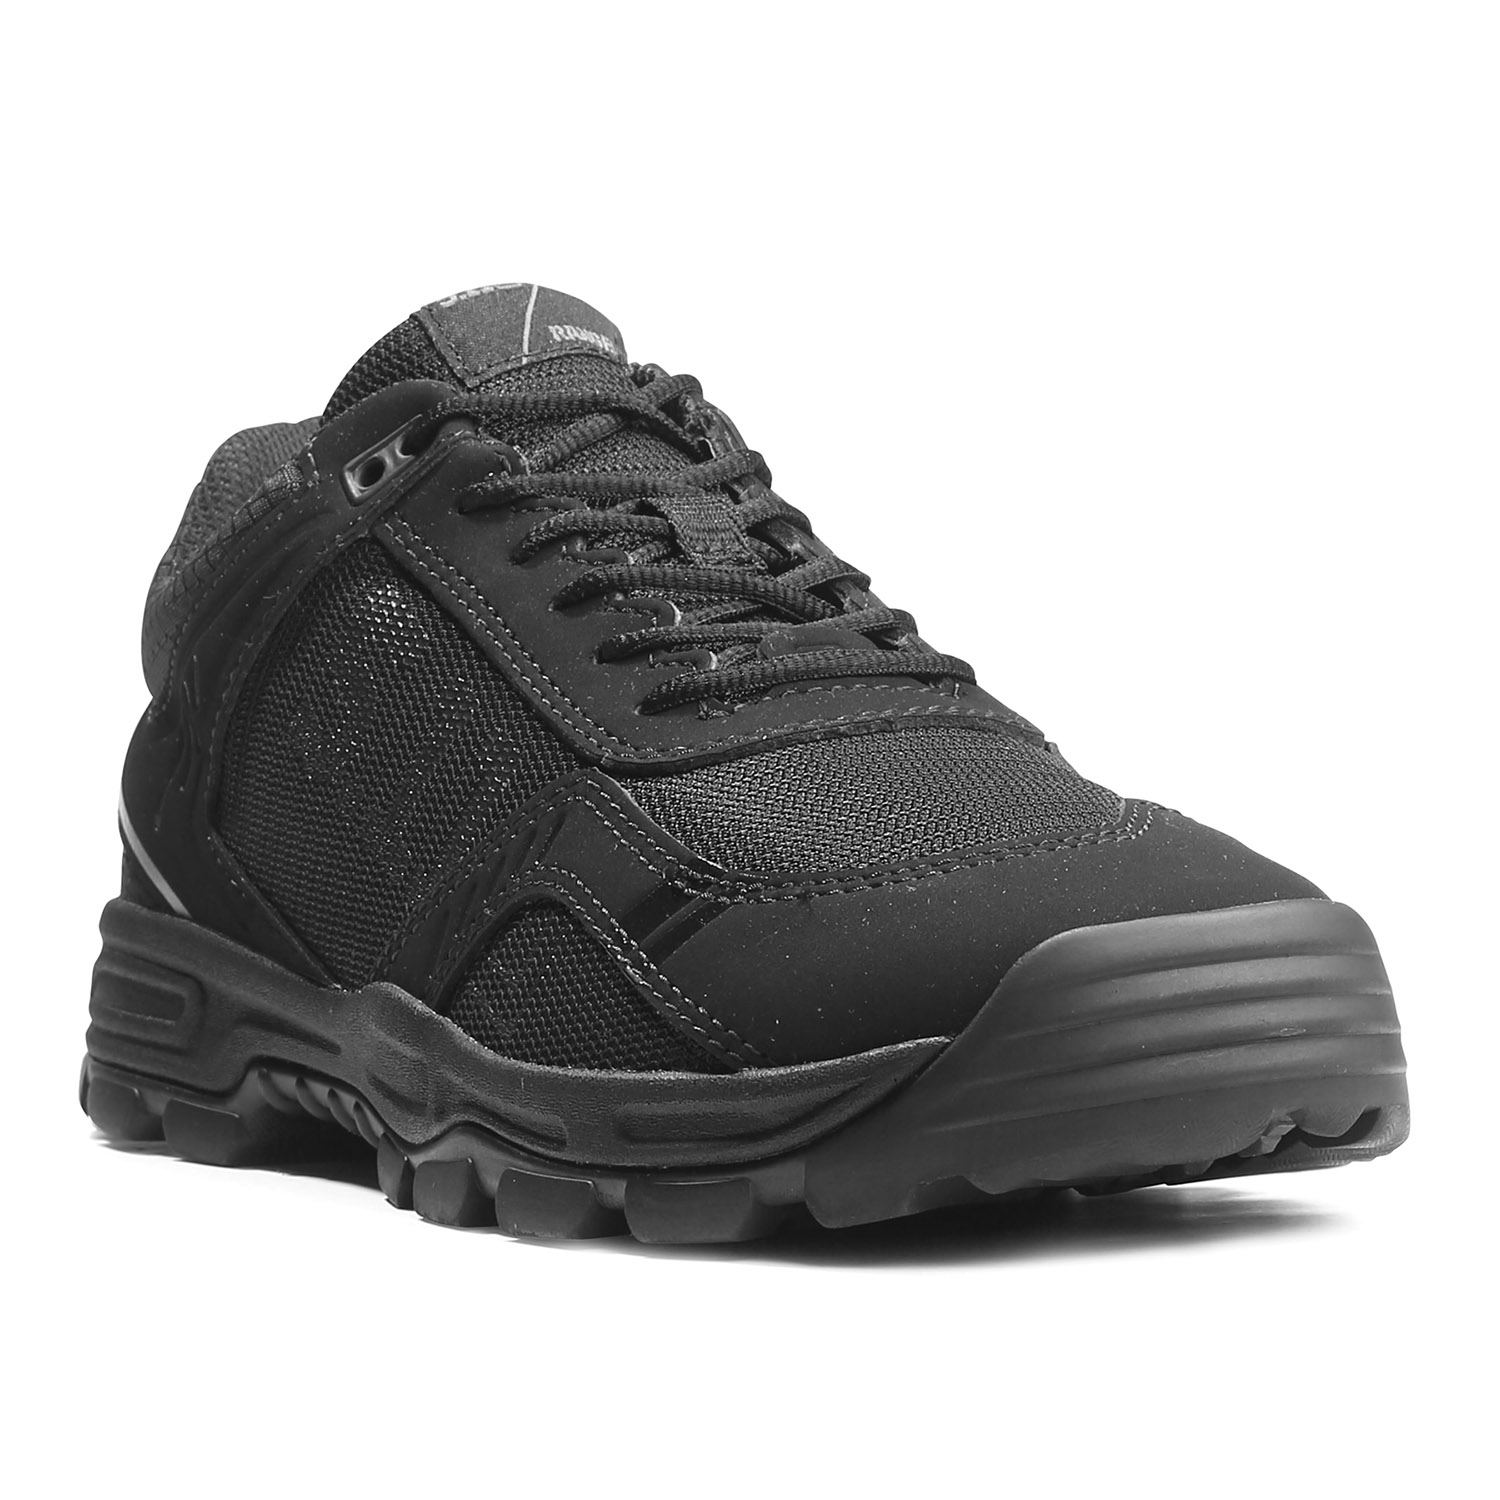 5.11 Tactical Ranger Oxfords